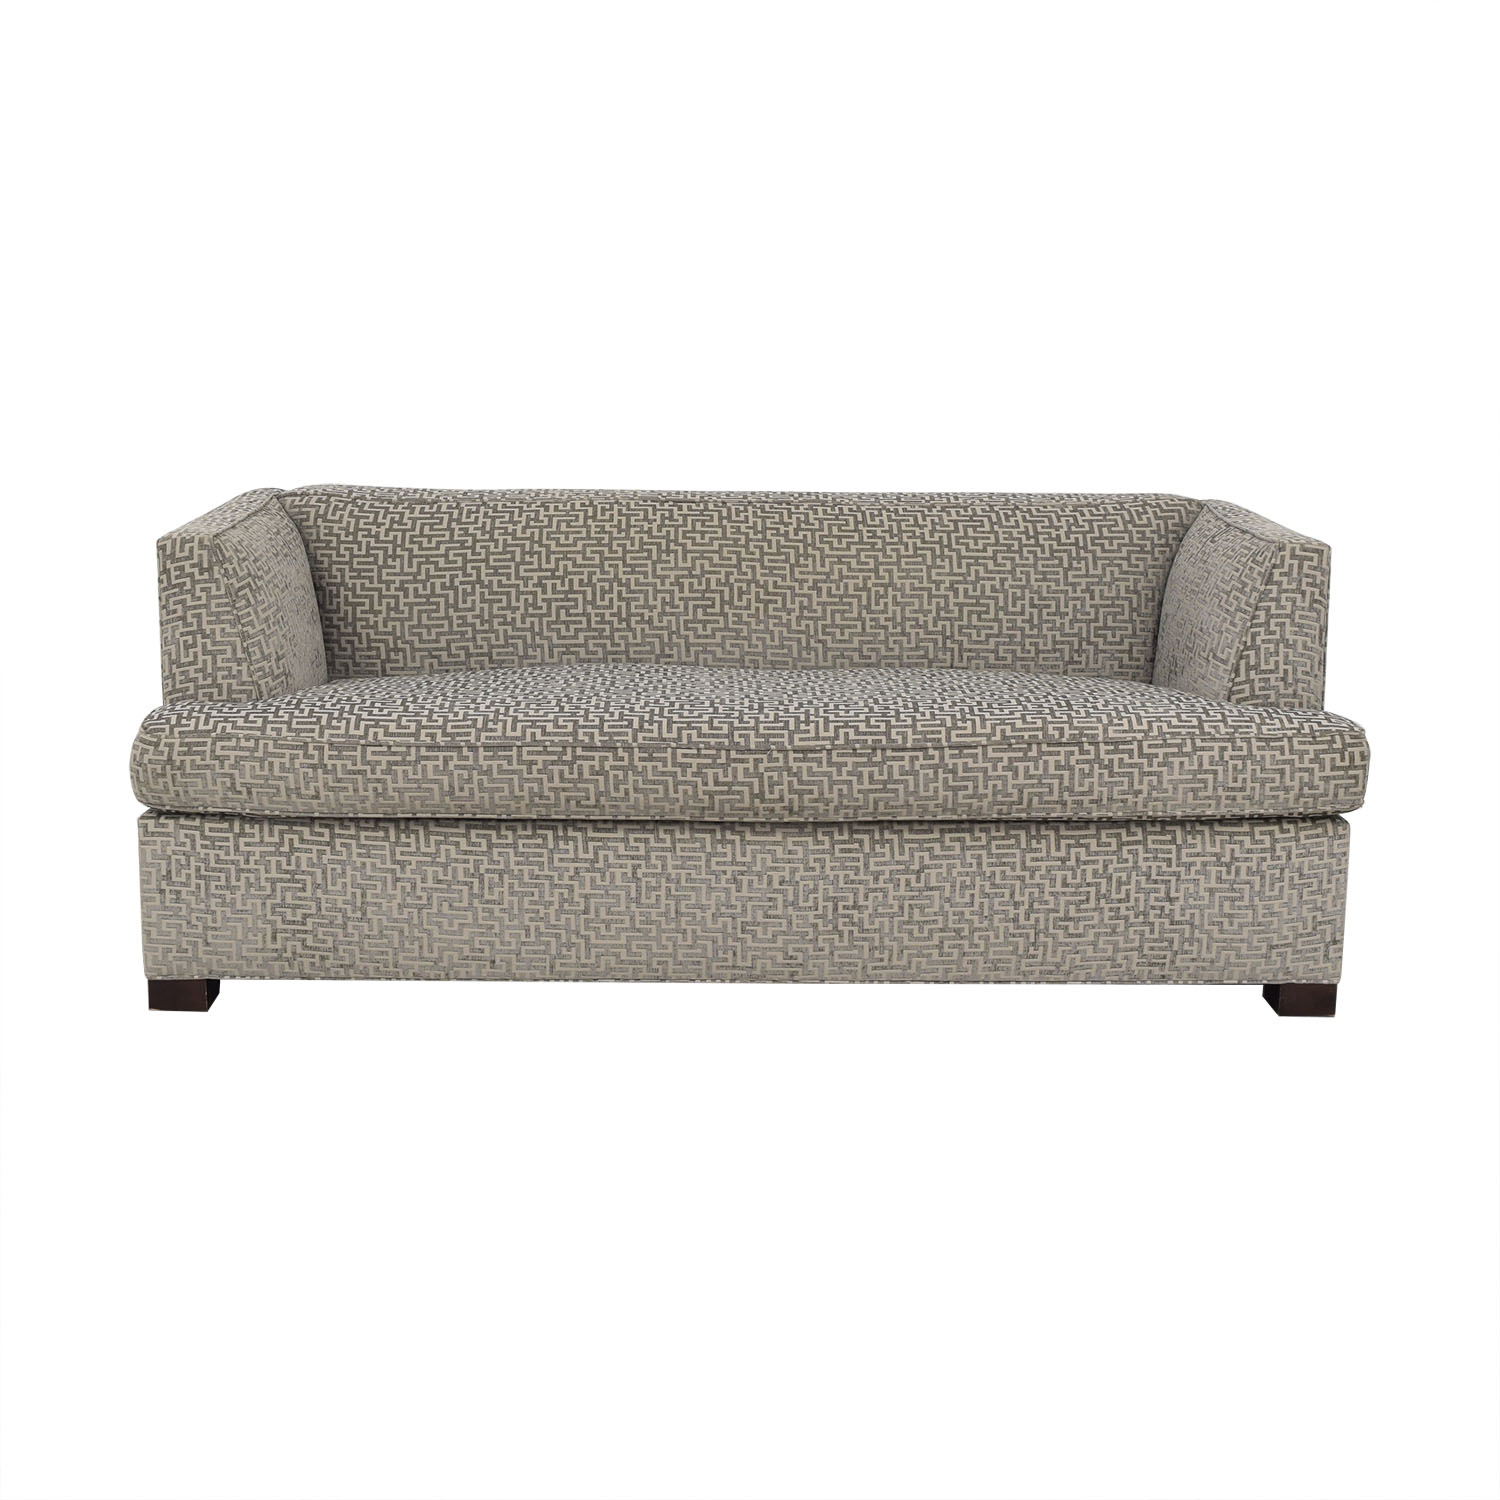 Mitchell Gold + Bob Williams Mitchell Gold + Bob Williams Full Sleeper Sofa gray